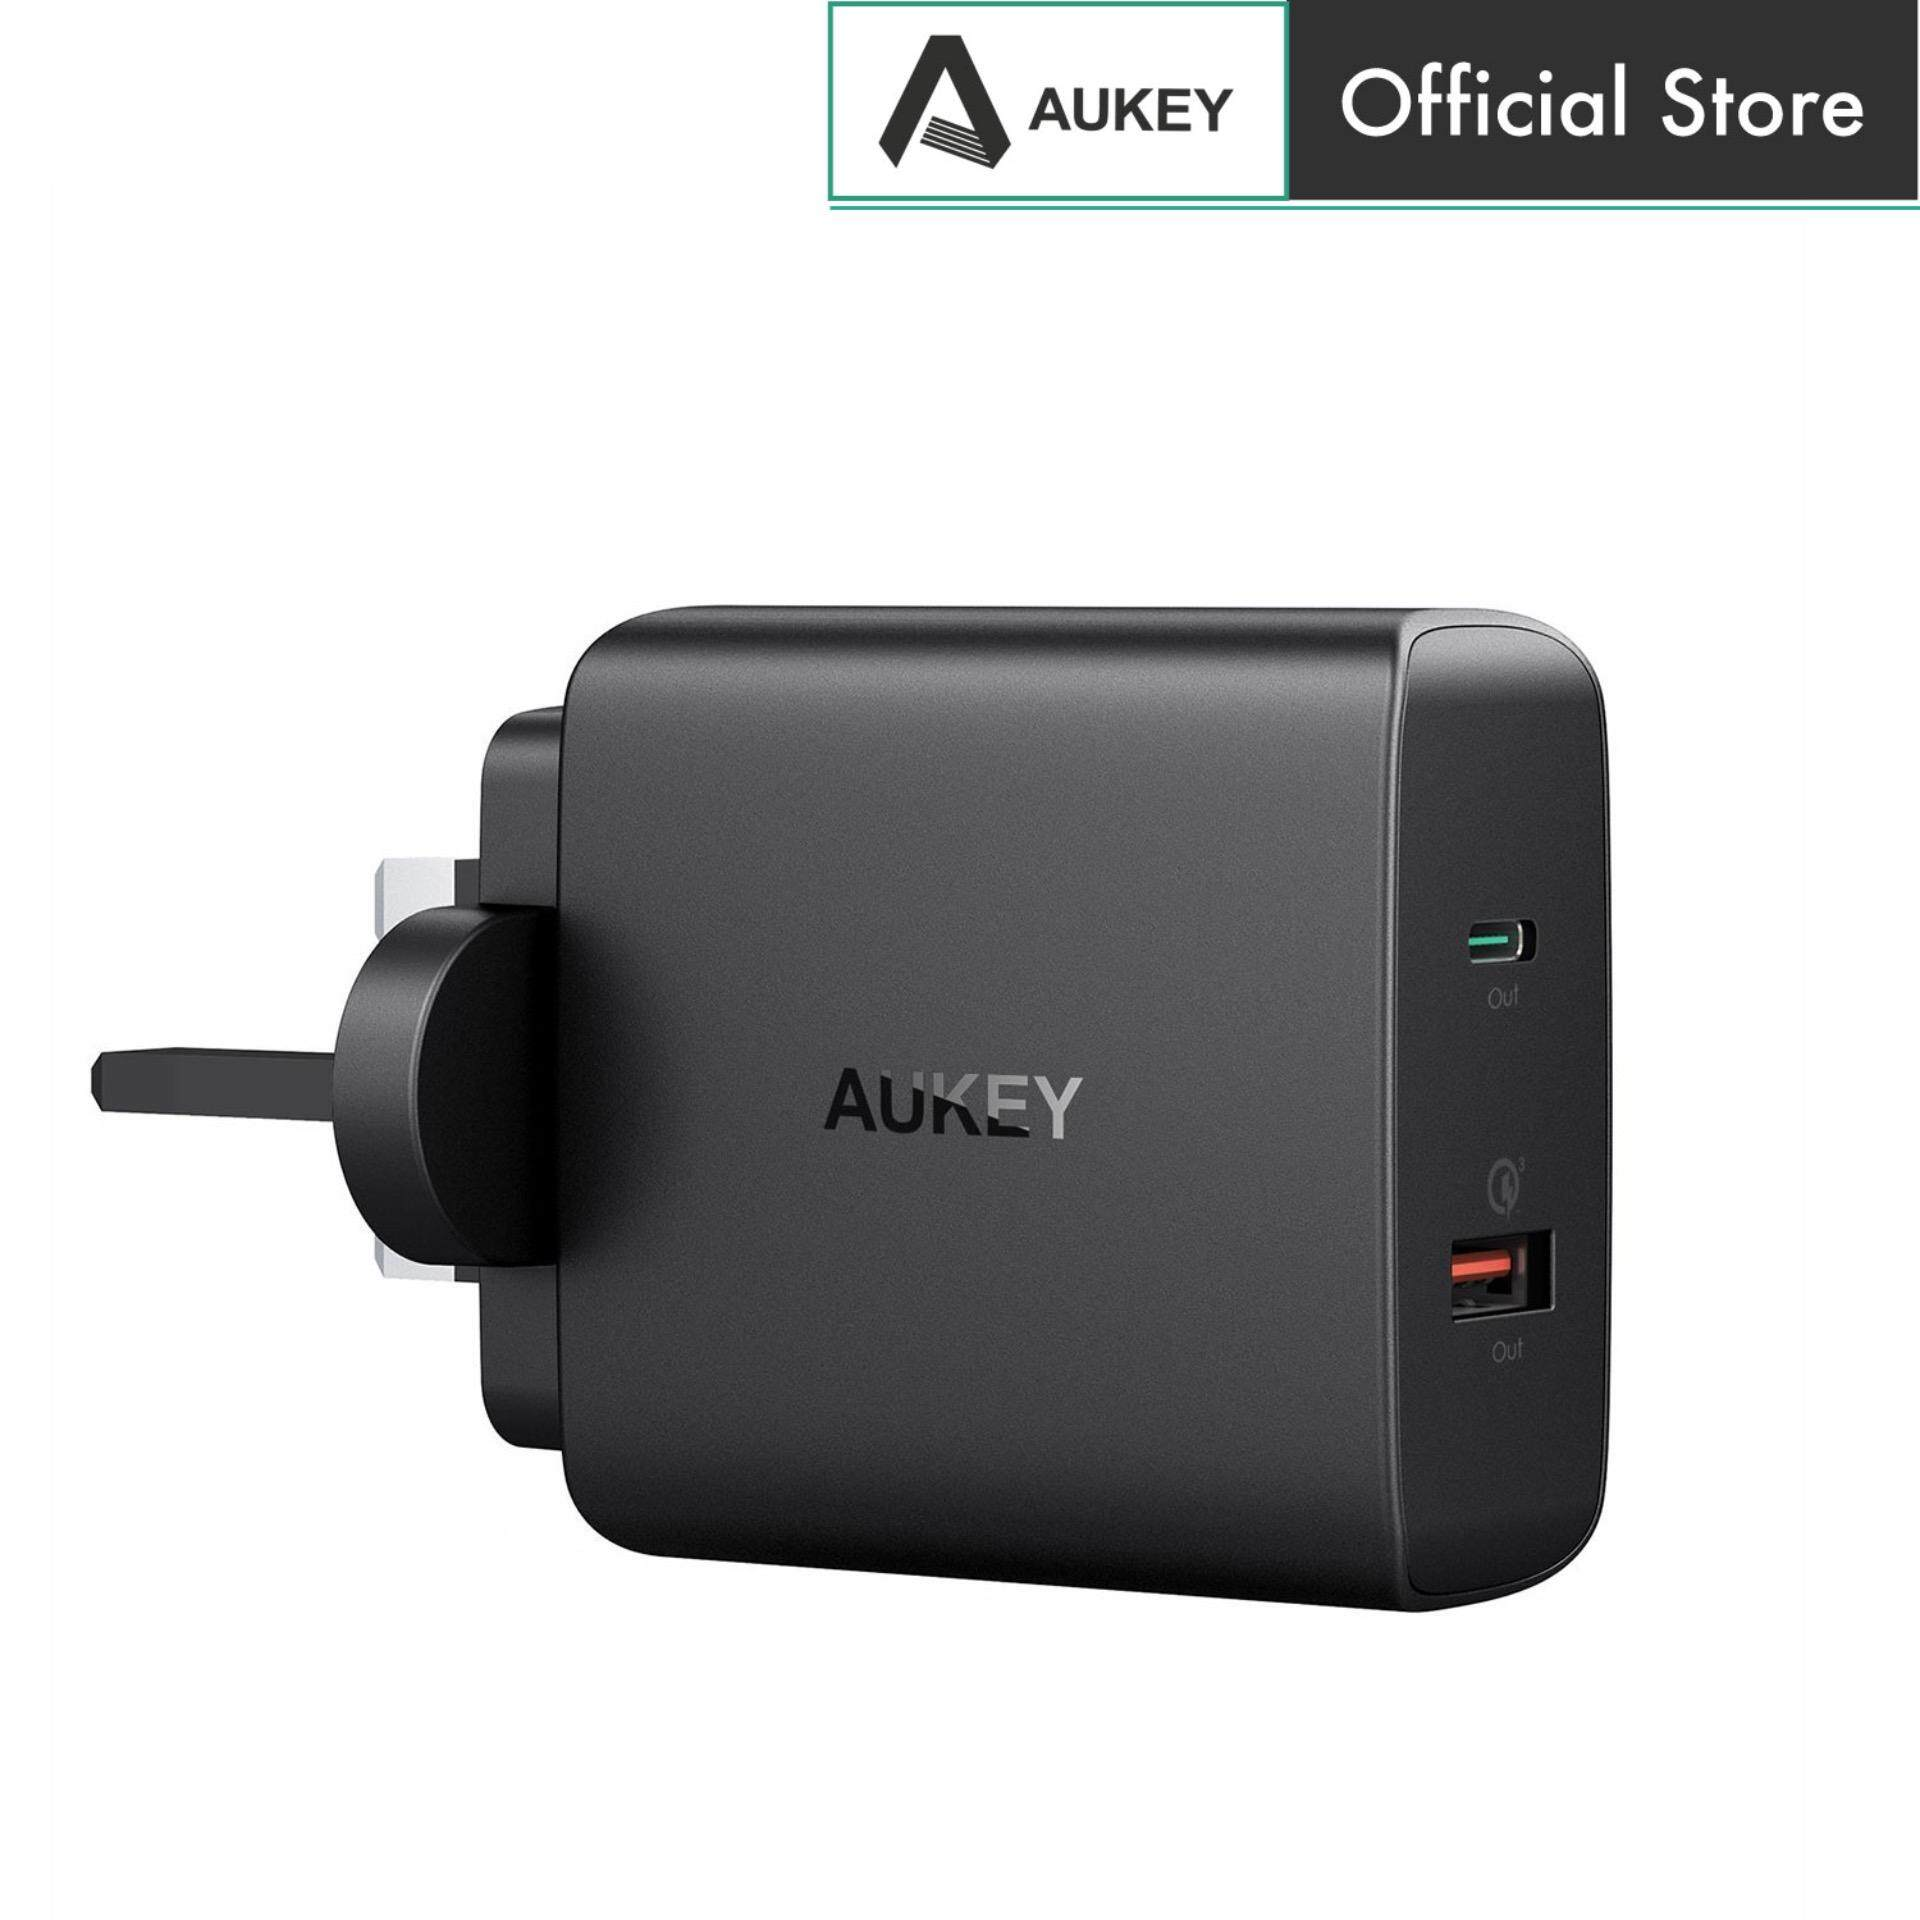 AUKEY PA-Y11 48W Power Delivery 3.0 USB C Turbo Wall Charger With Quick Charge 3.0